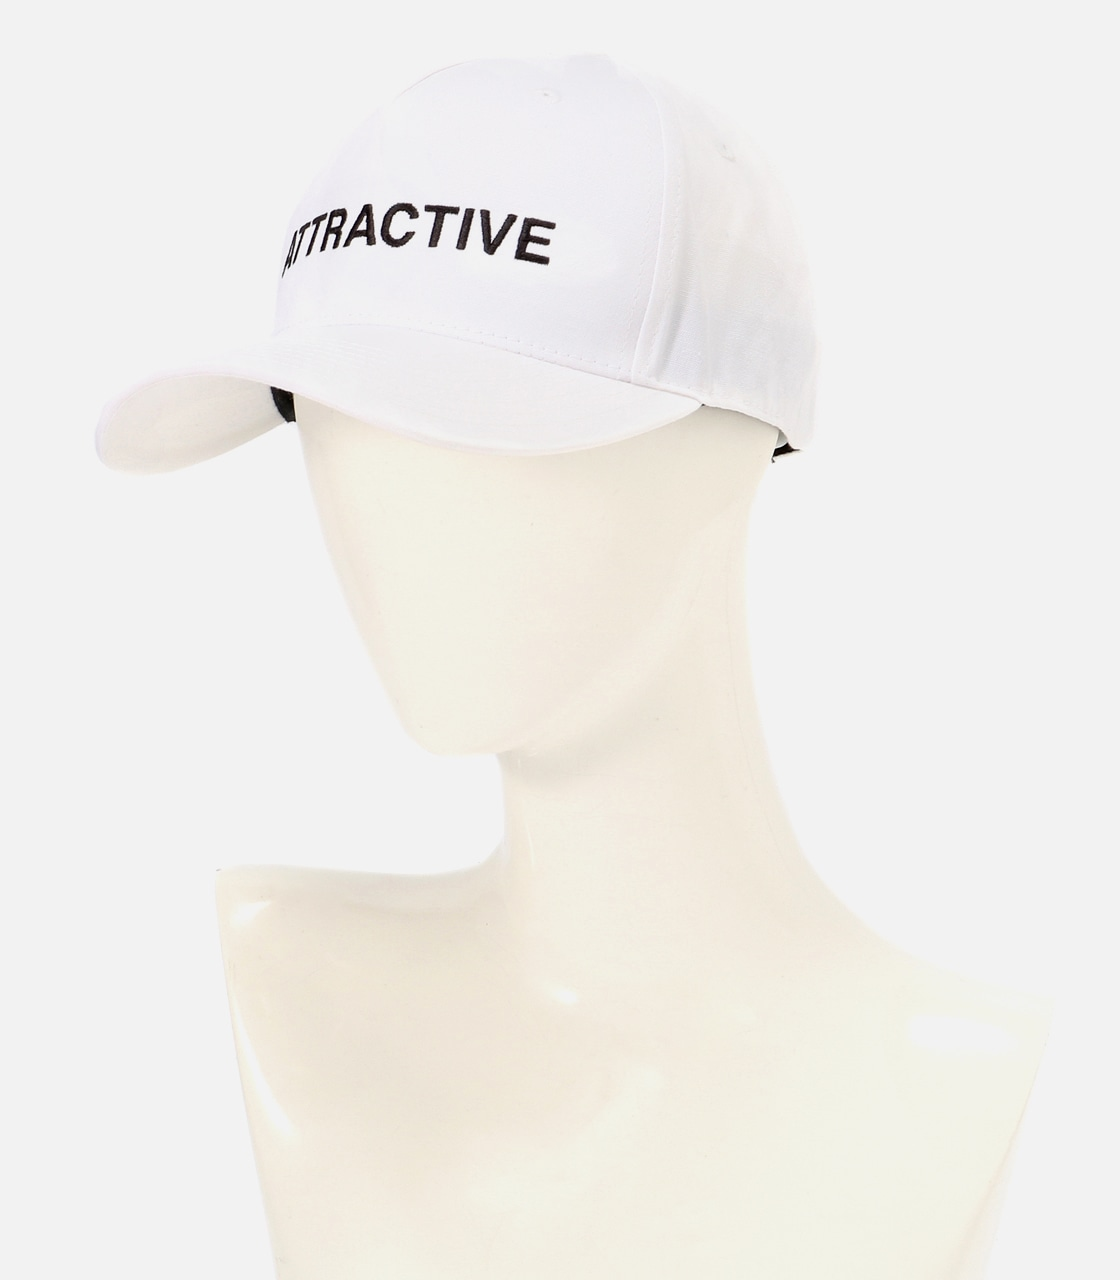 【AZUL BY MOUSSY】ATTRACTIVE ツイルキャップ 詳細画像 WHT 9